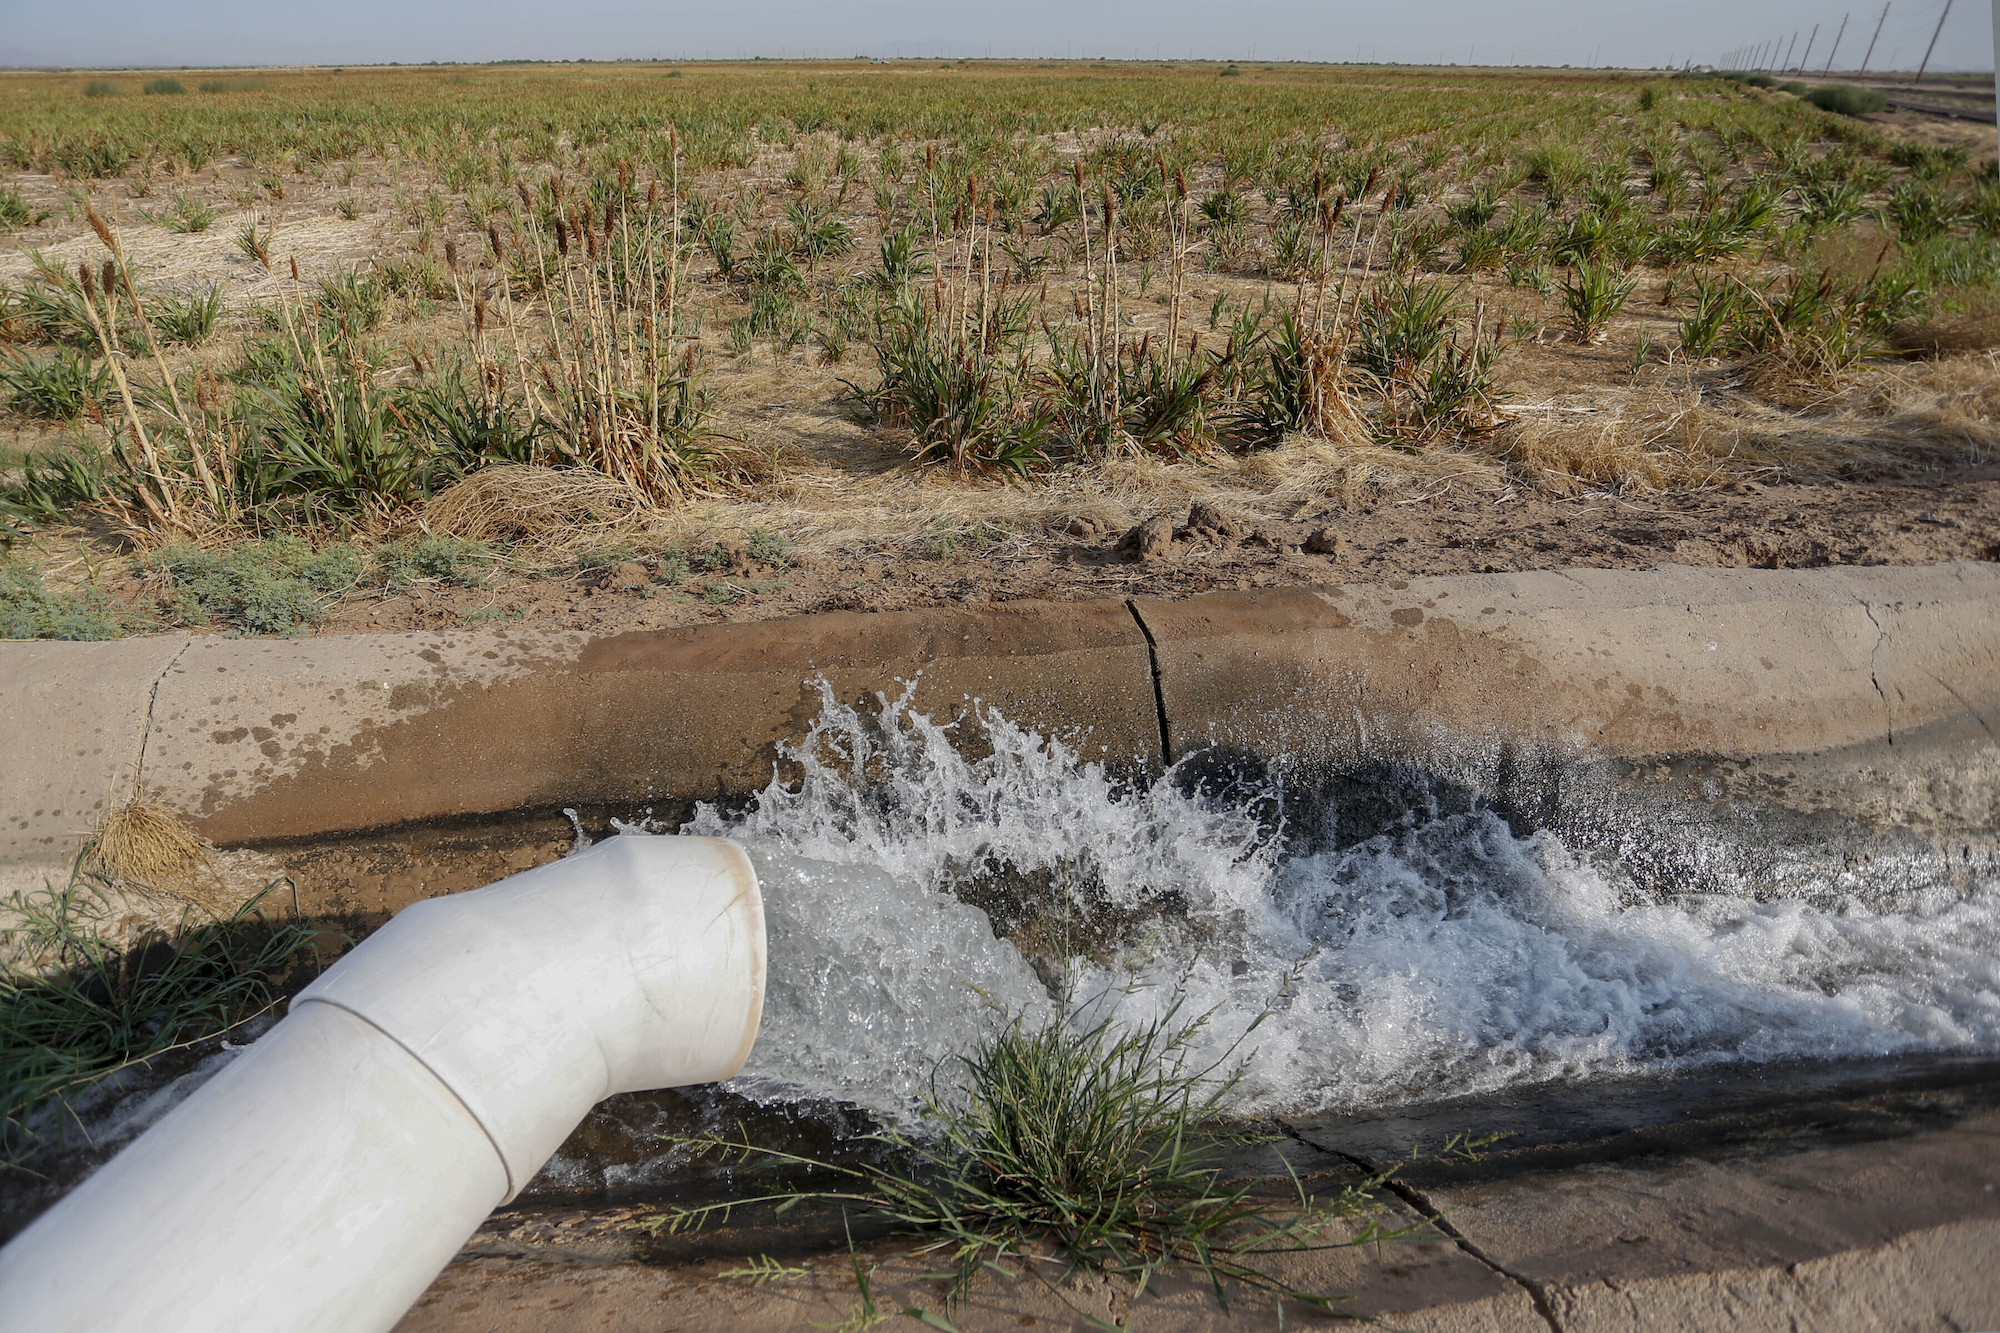 water flows from a white outdoor pipe into an irrigation canal amid dry land and brush